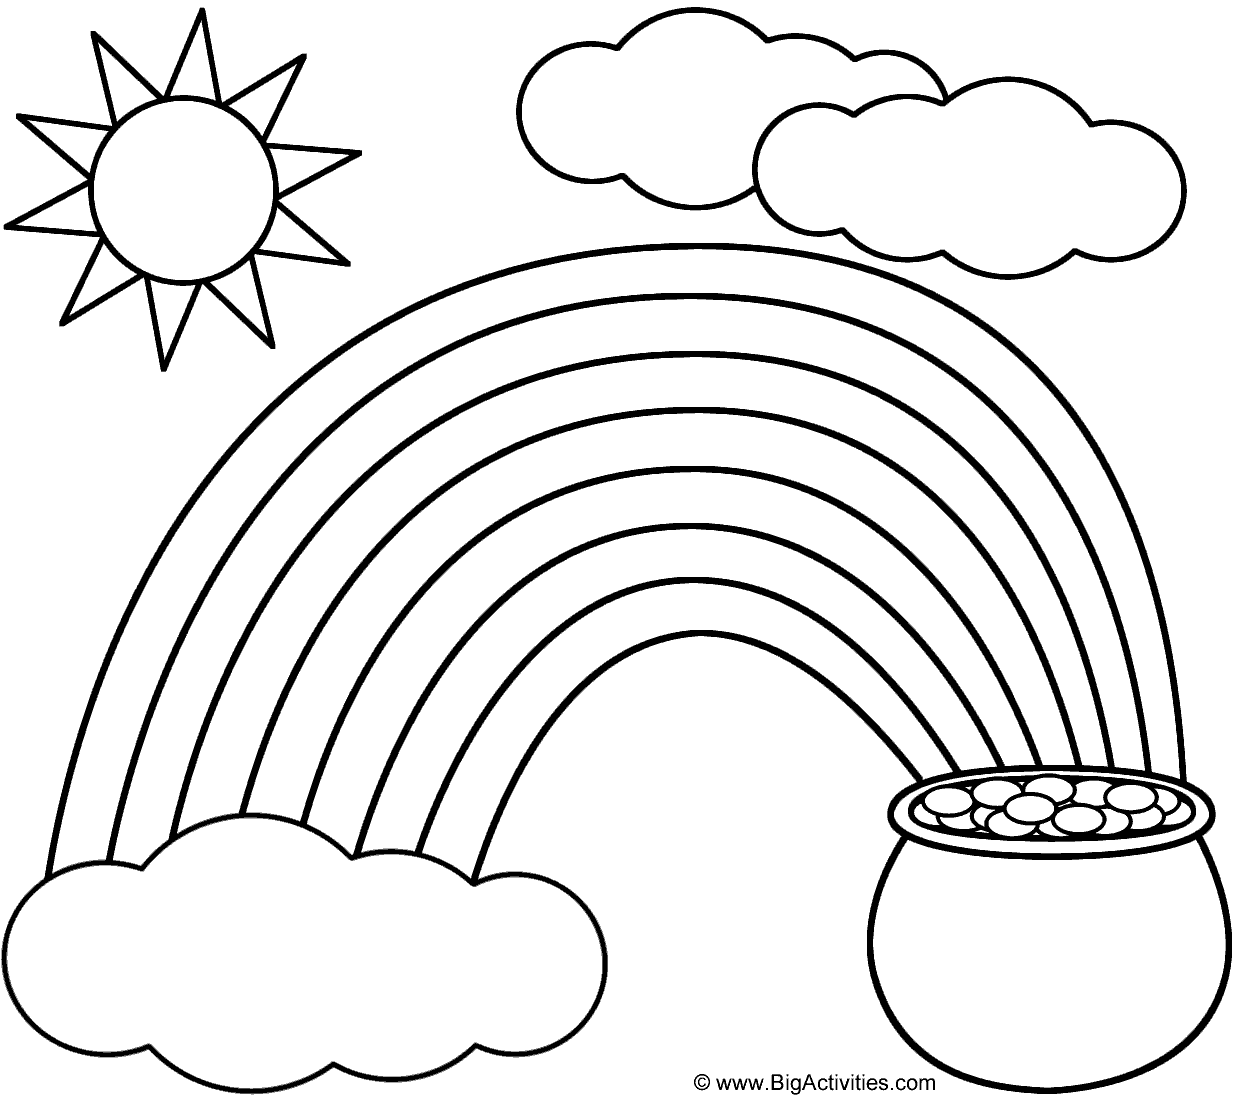 Coloring Page St Patricks Coloring Sheets St Patricks Day Crafts For Kids Coloring Pages